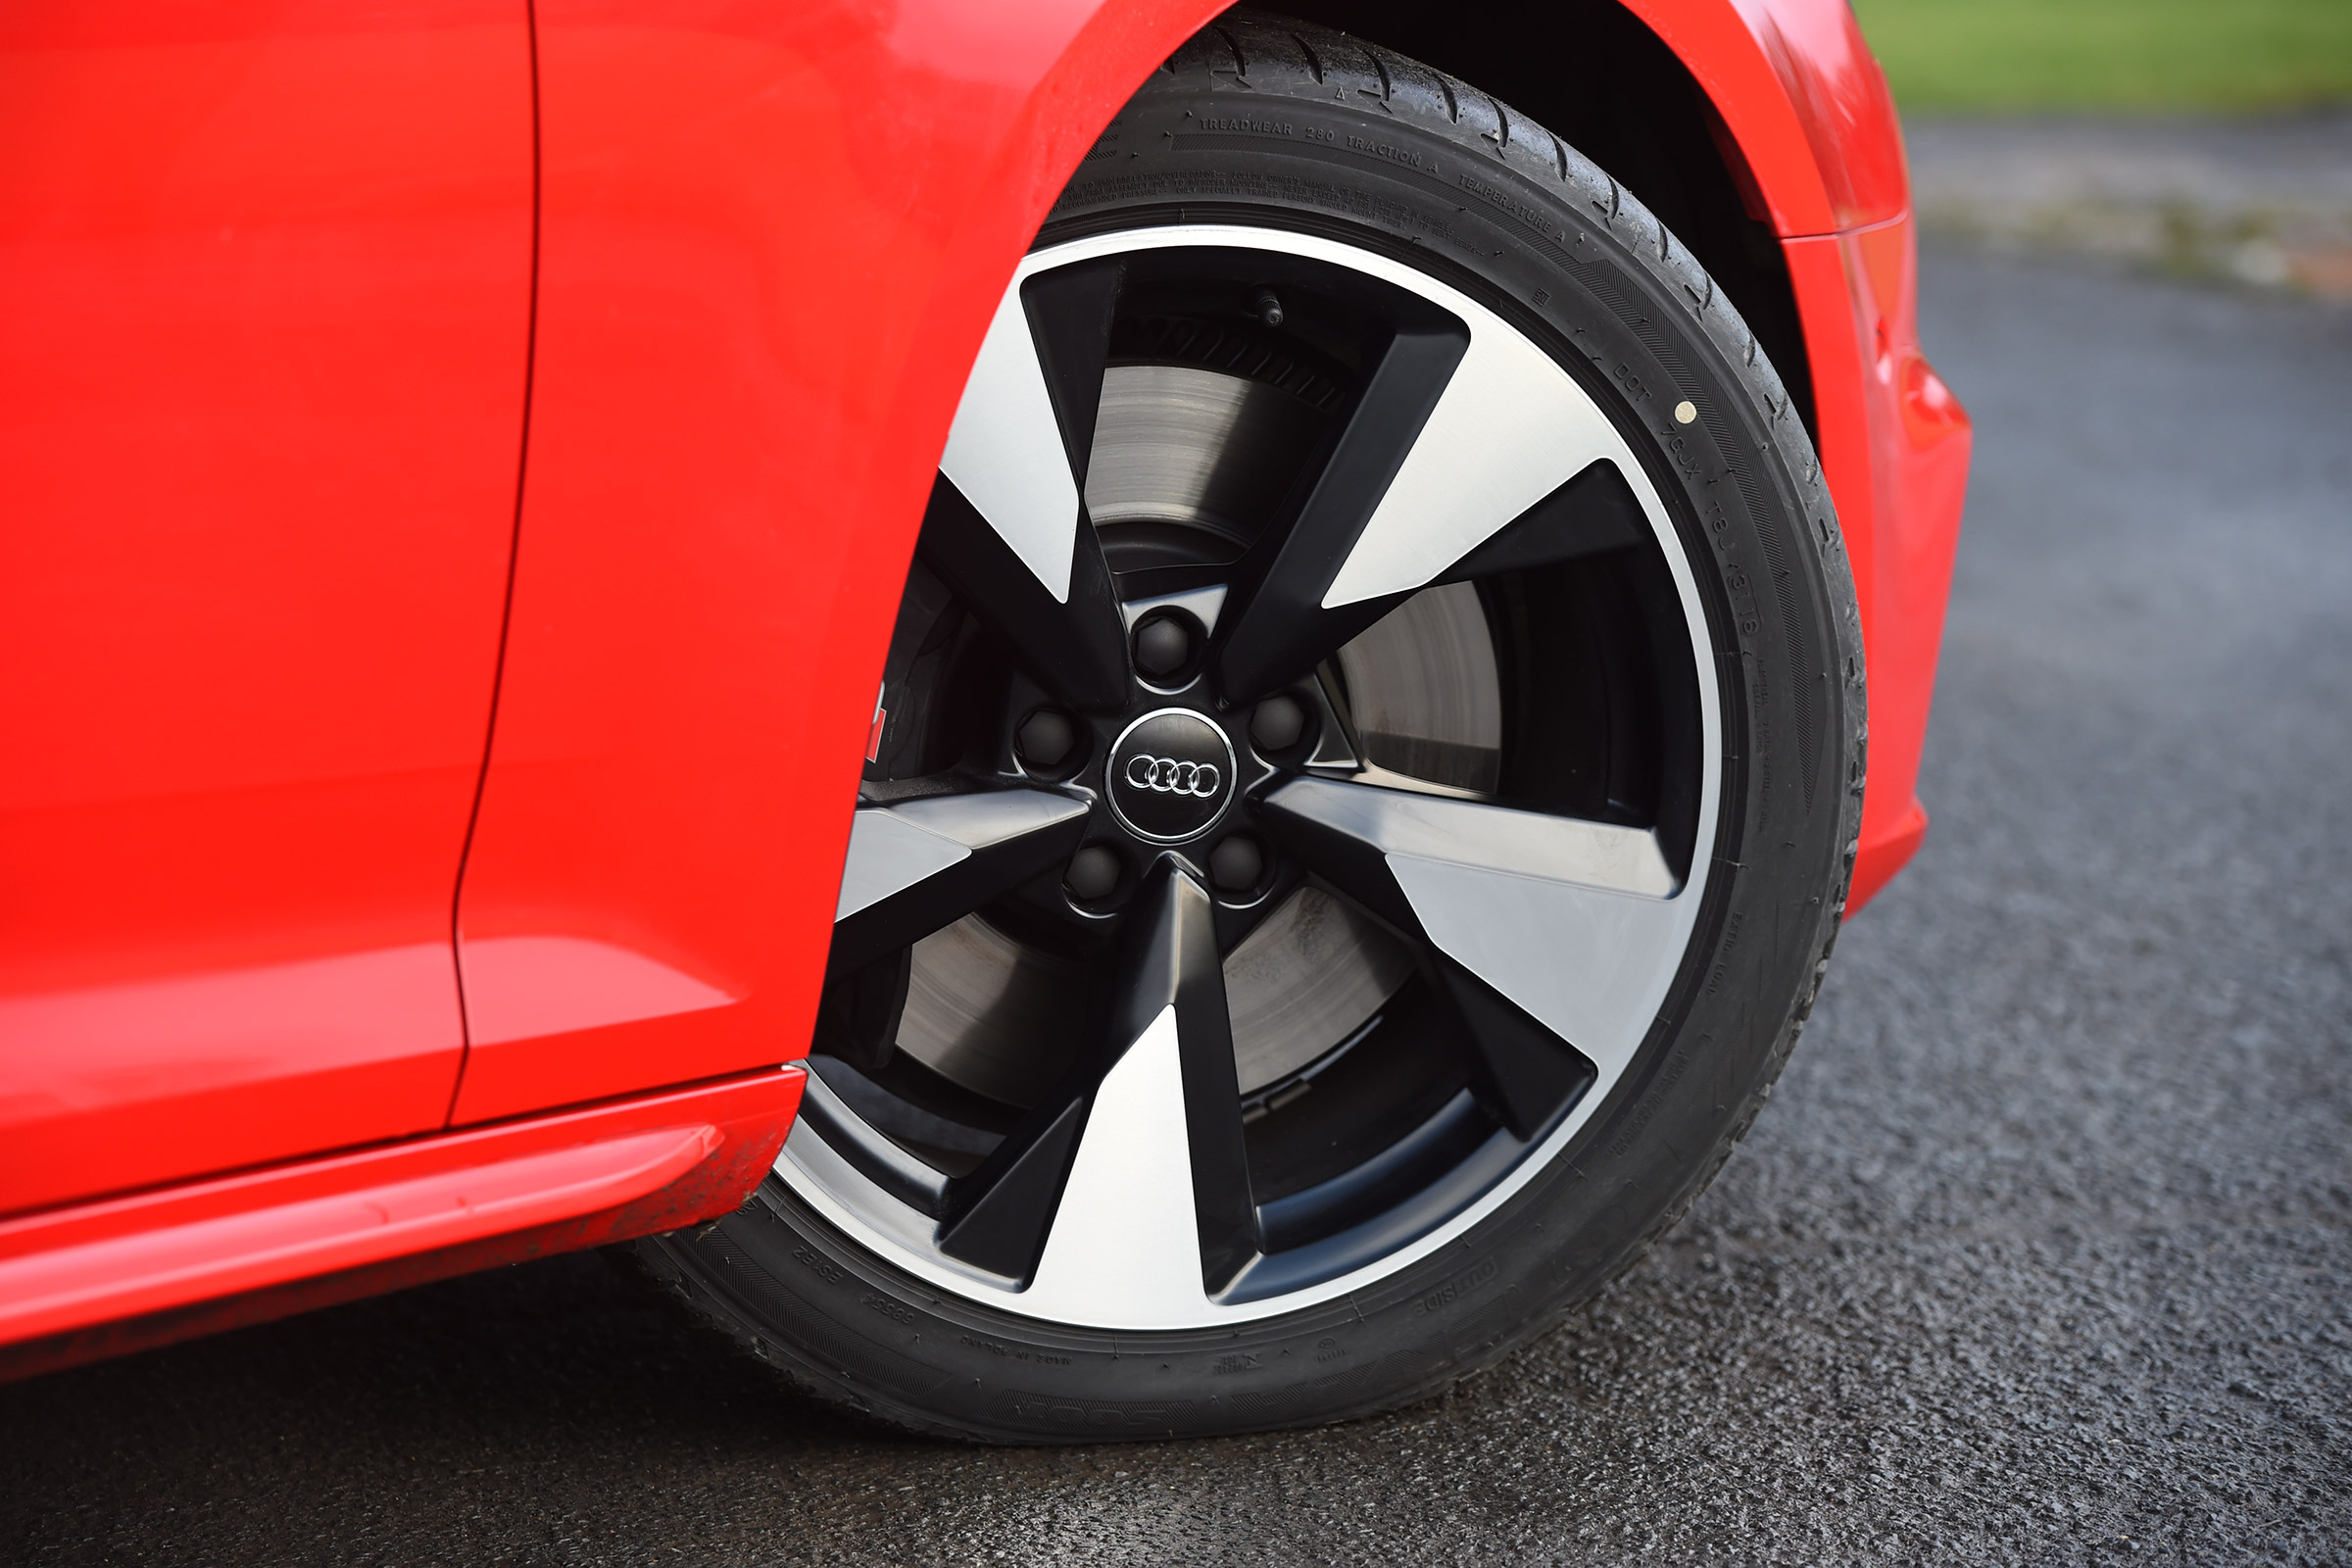 2017 Audi S4 Avant Exterior View Wheel Profile (View 13 of 17)